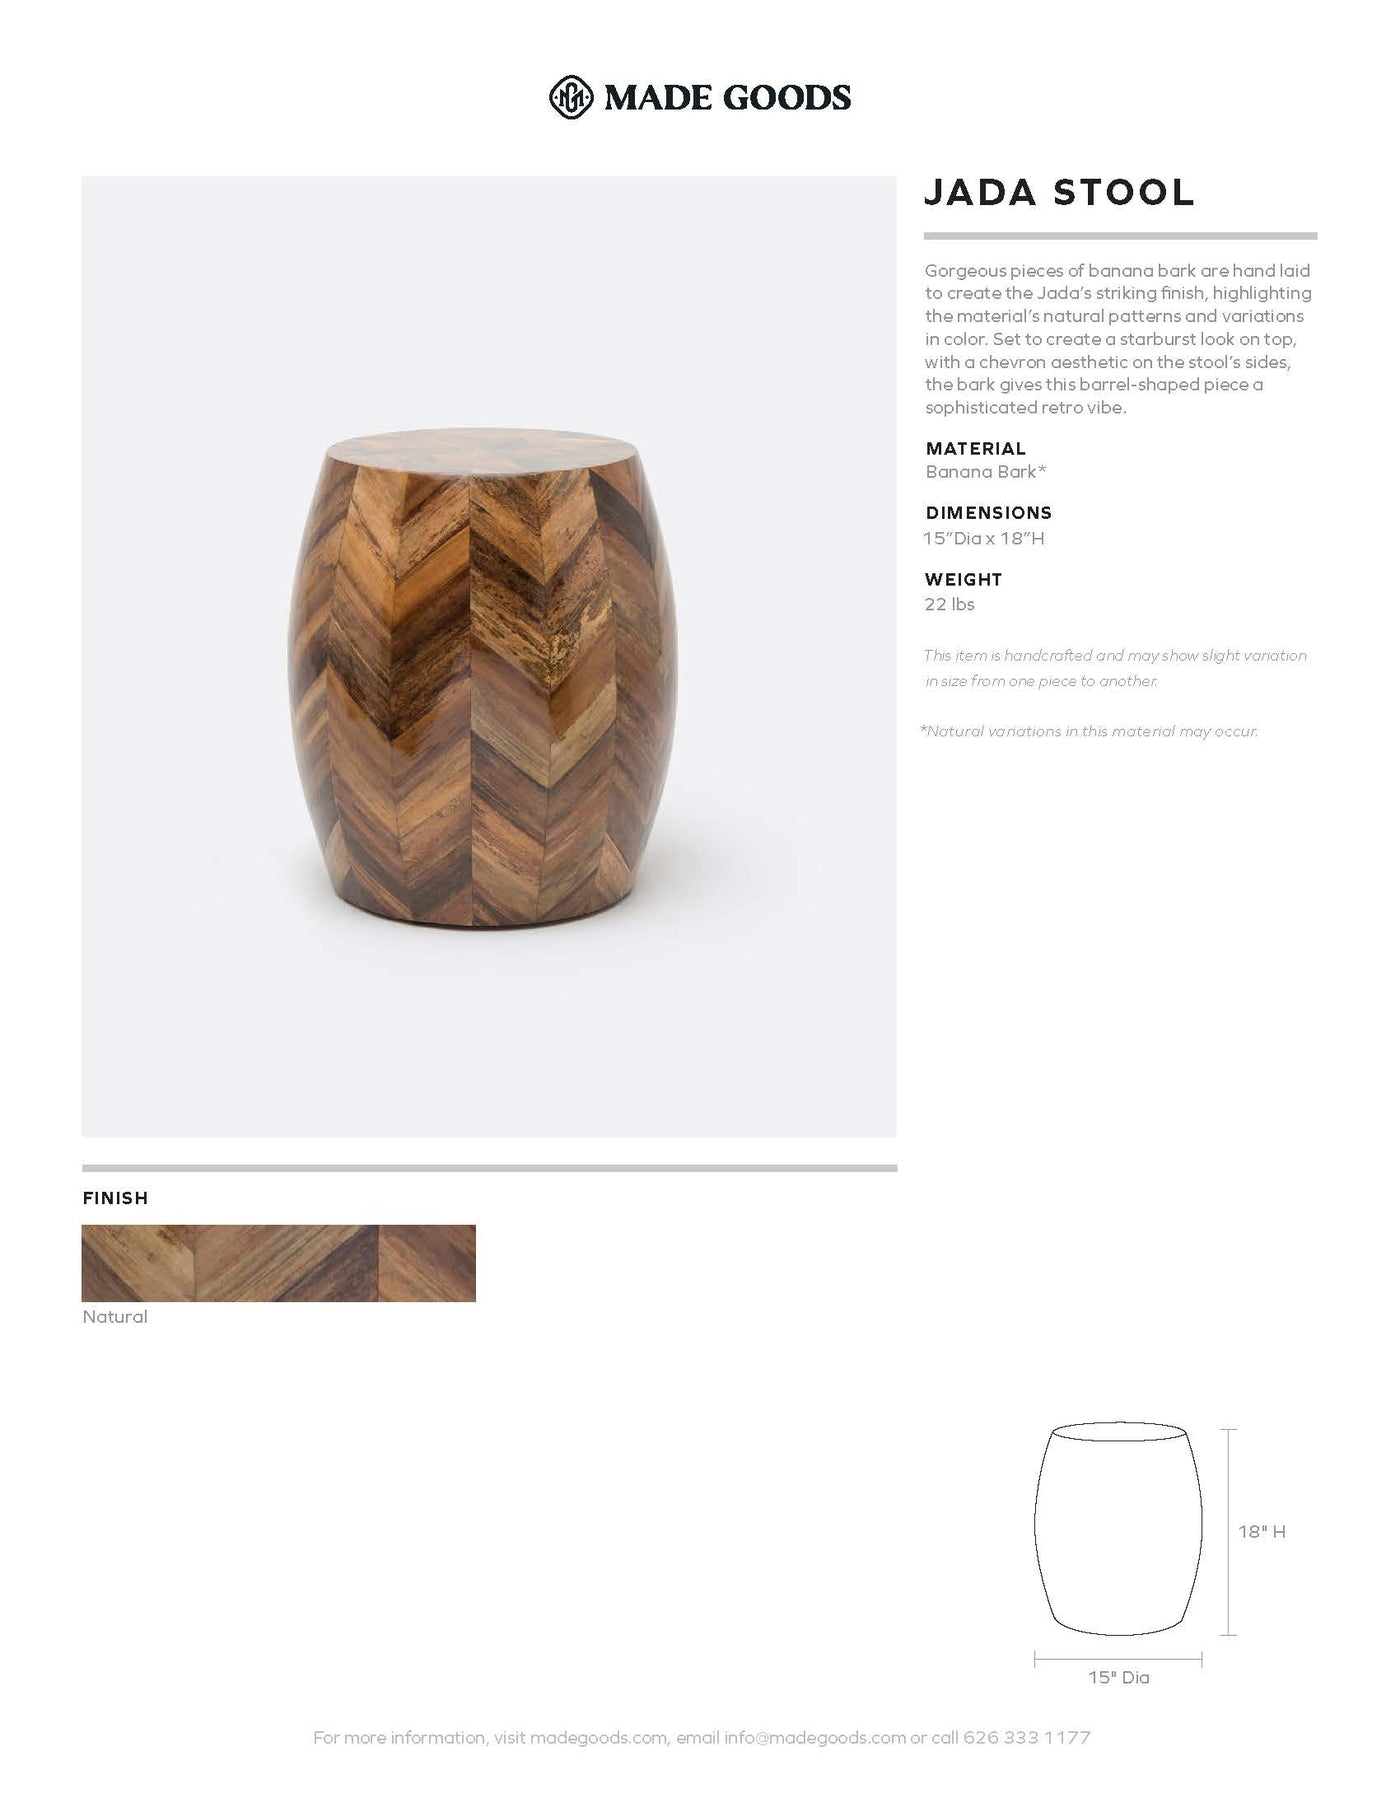 Made Goods Jada Stool tearsheet